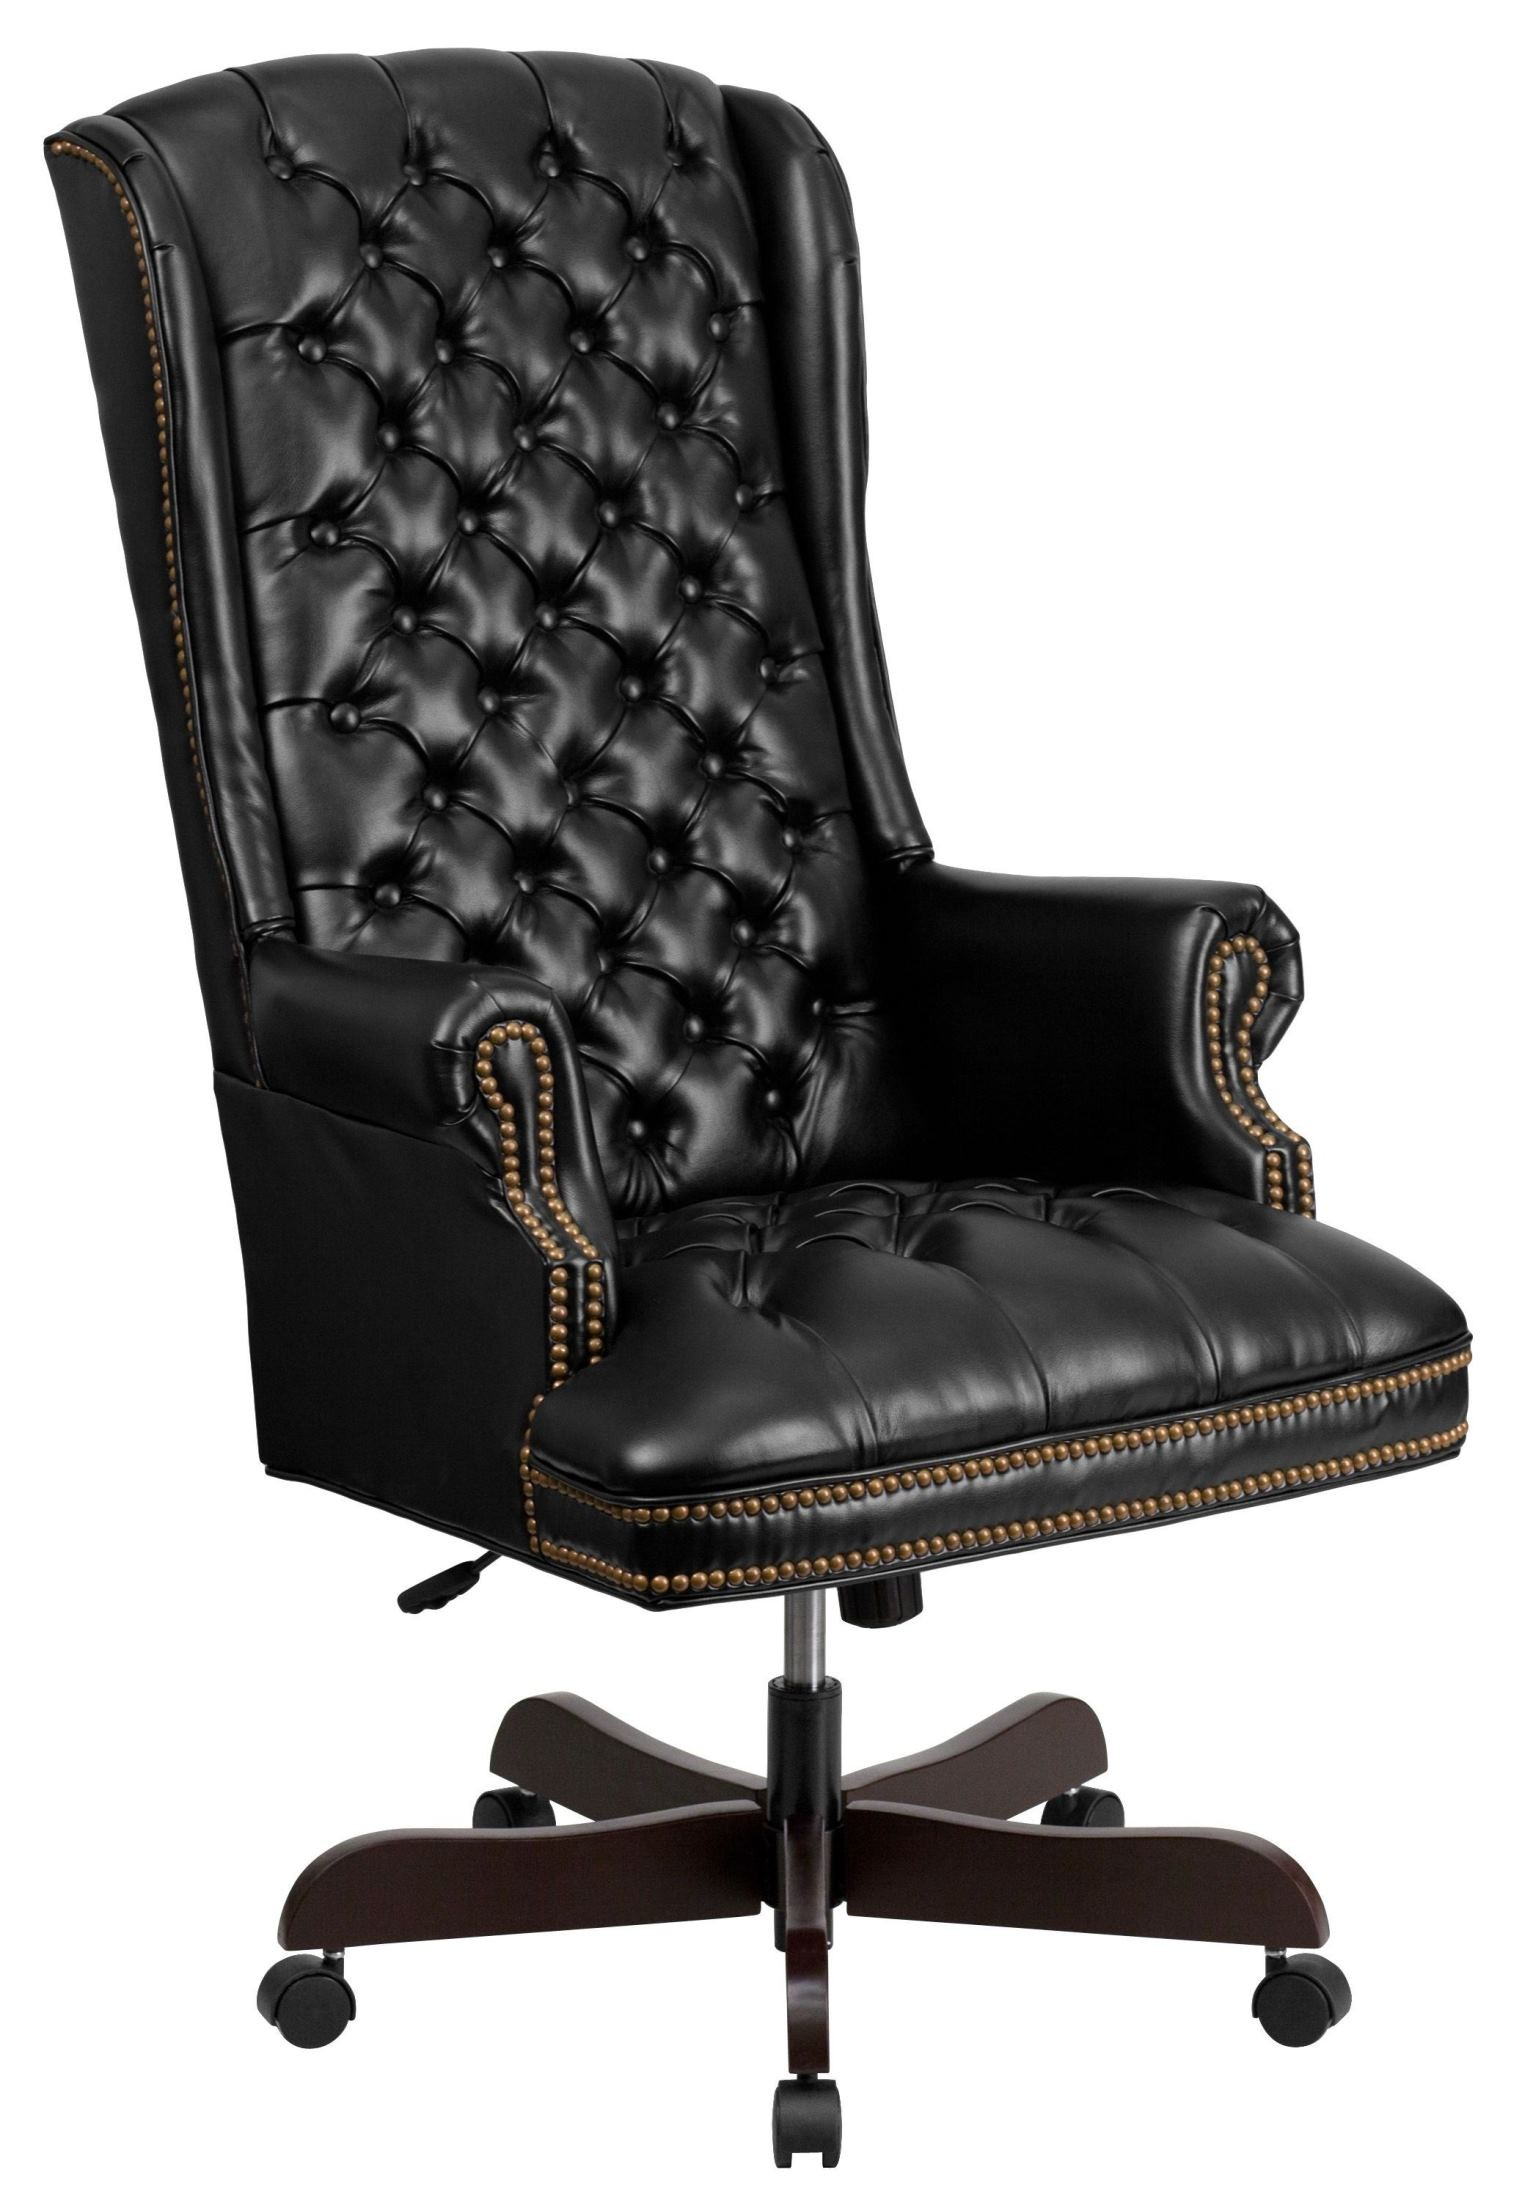 Executive Office Furniture: 360 High Back Tufted Black Leather Executive Office Chair